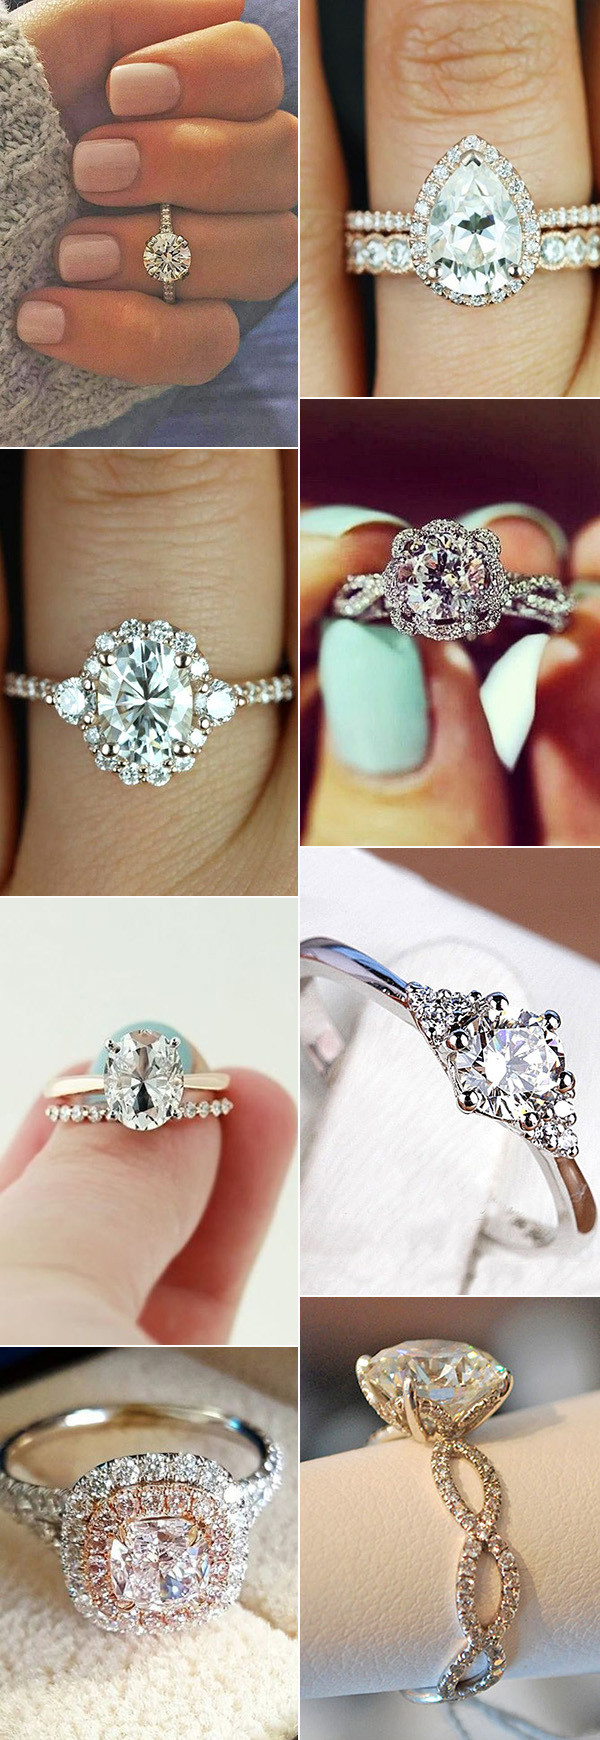 2017 trending amazing wedding engagement rings ideas - Amazing Wedding Rings